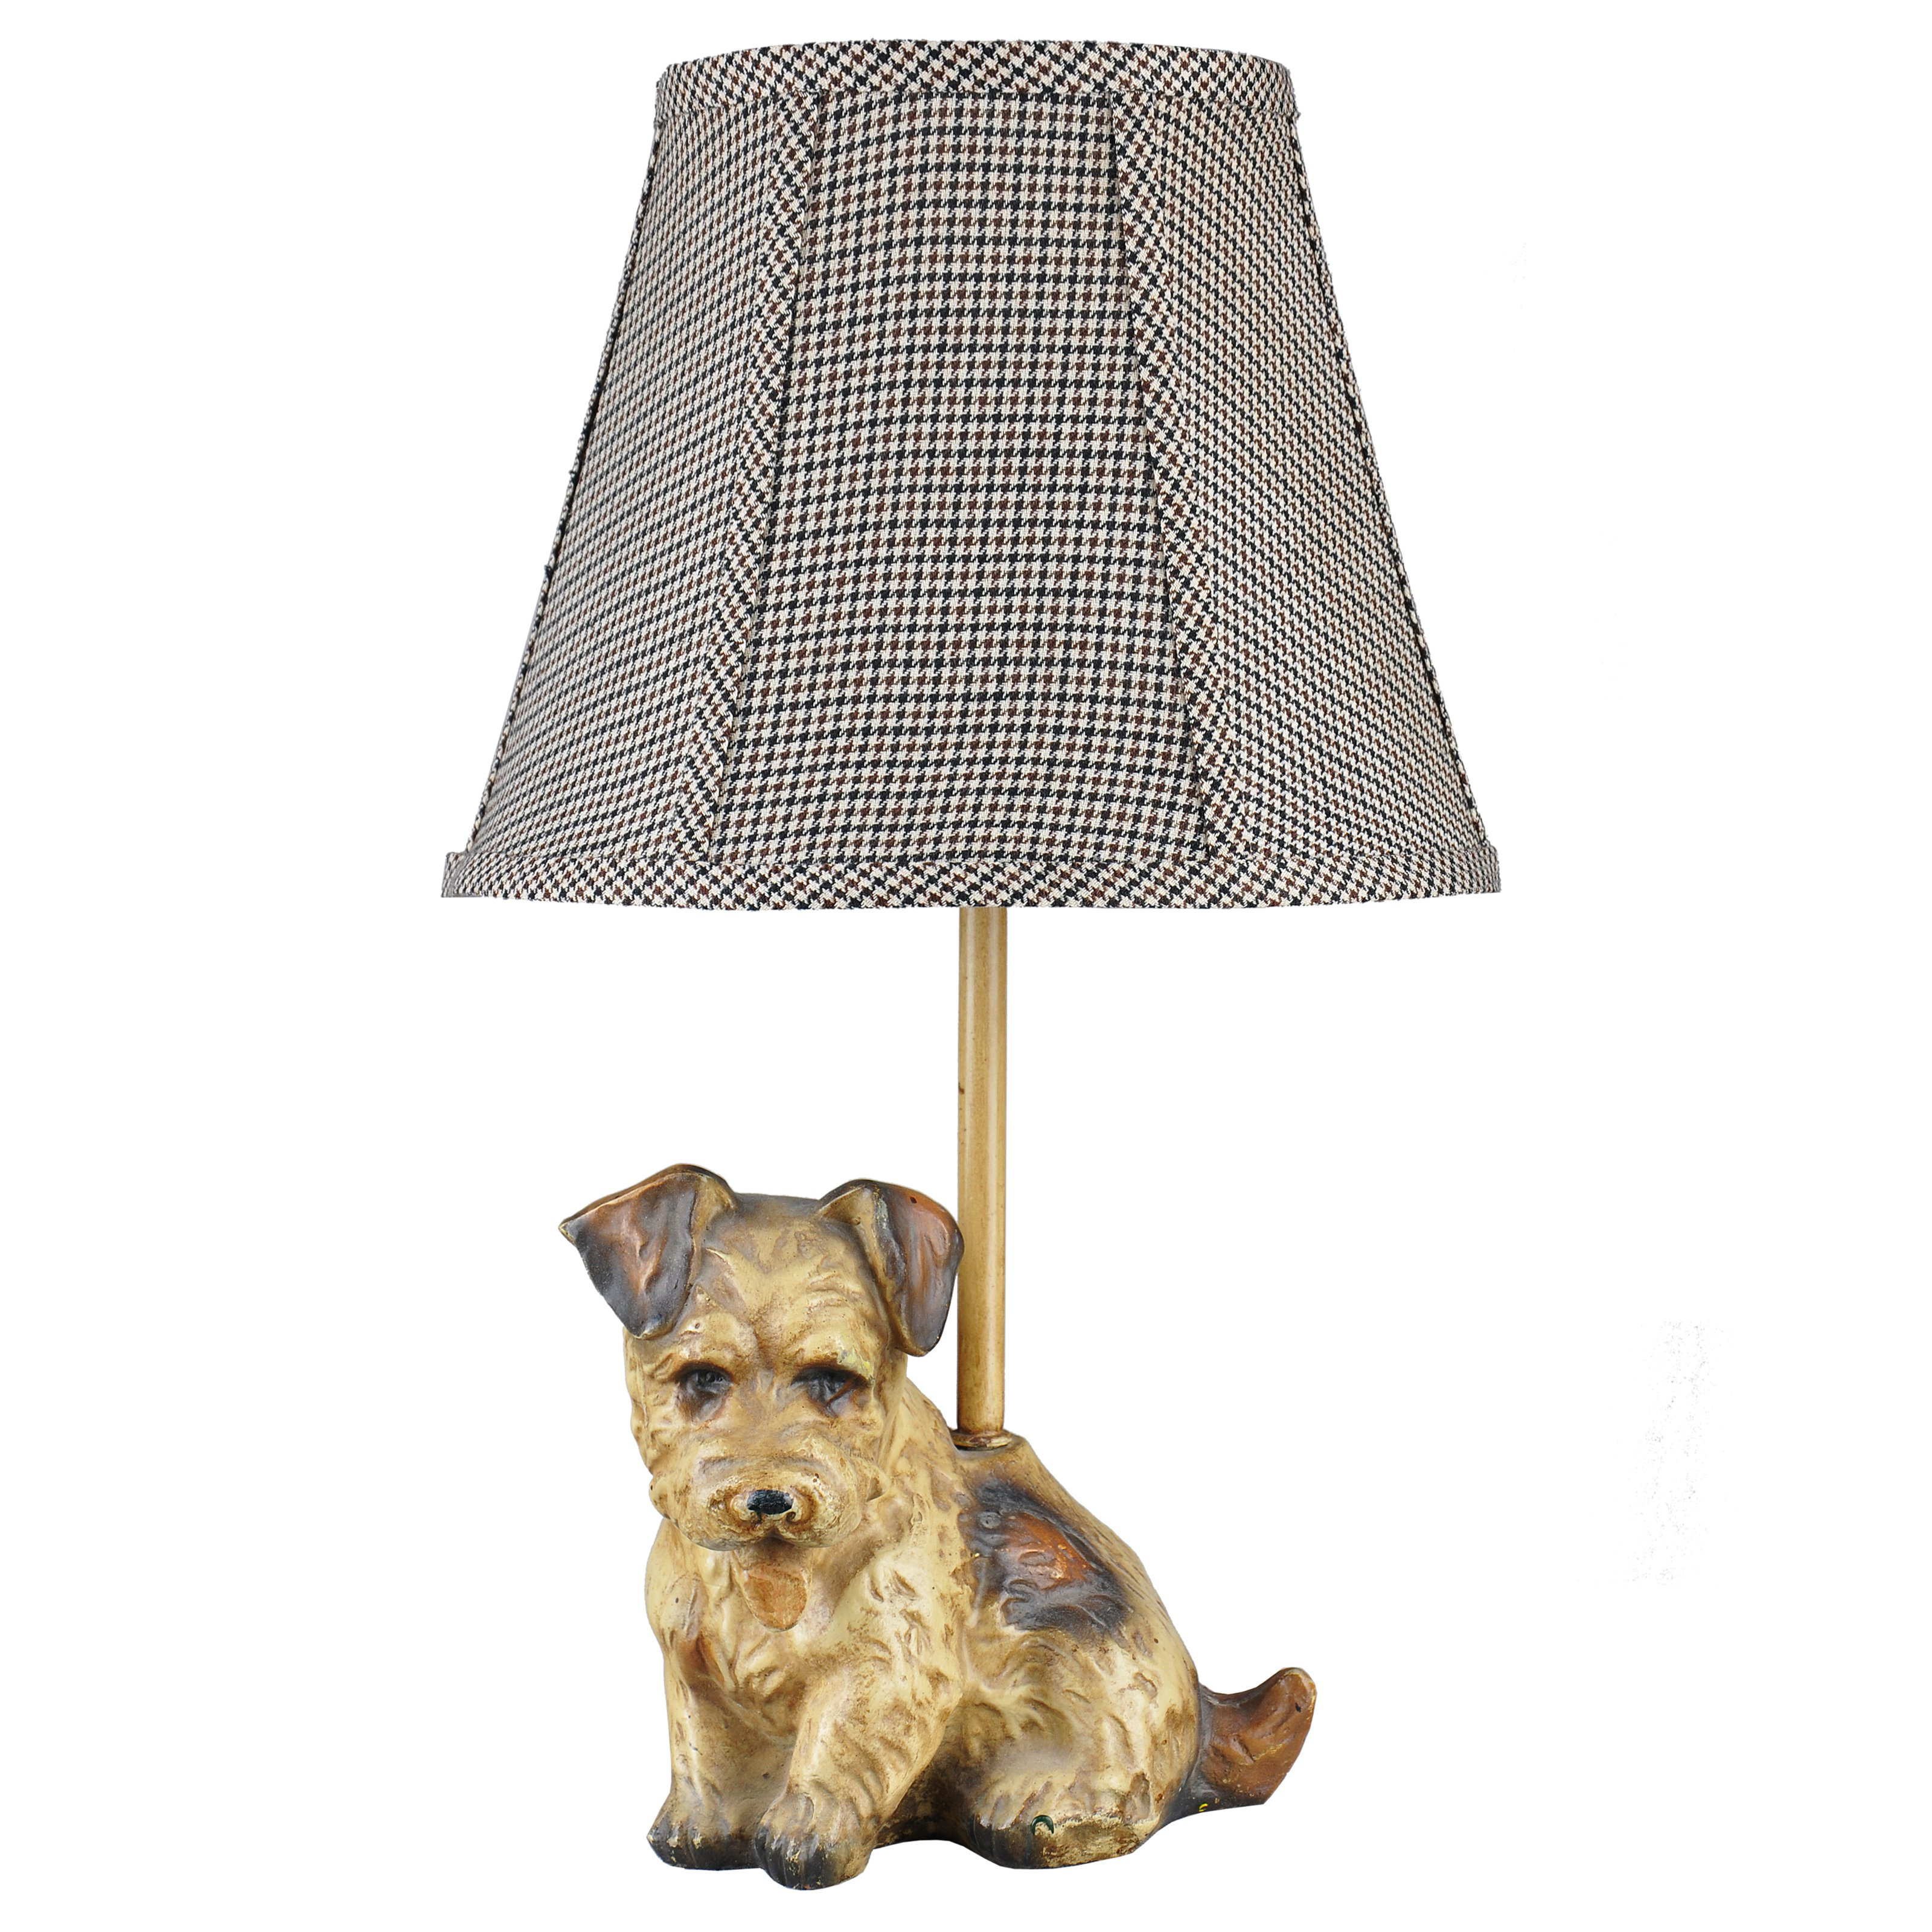 A Homestead Shoppe Buddy L1316A-UP1 Table Lamp